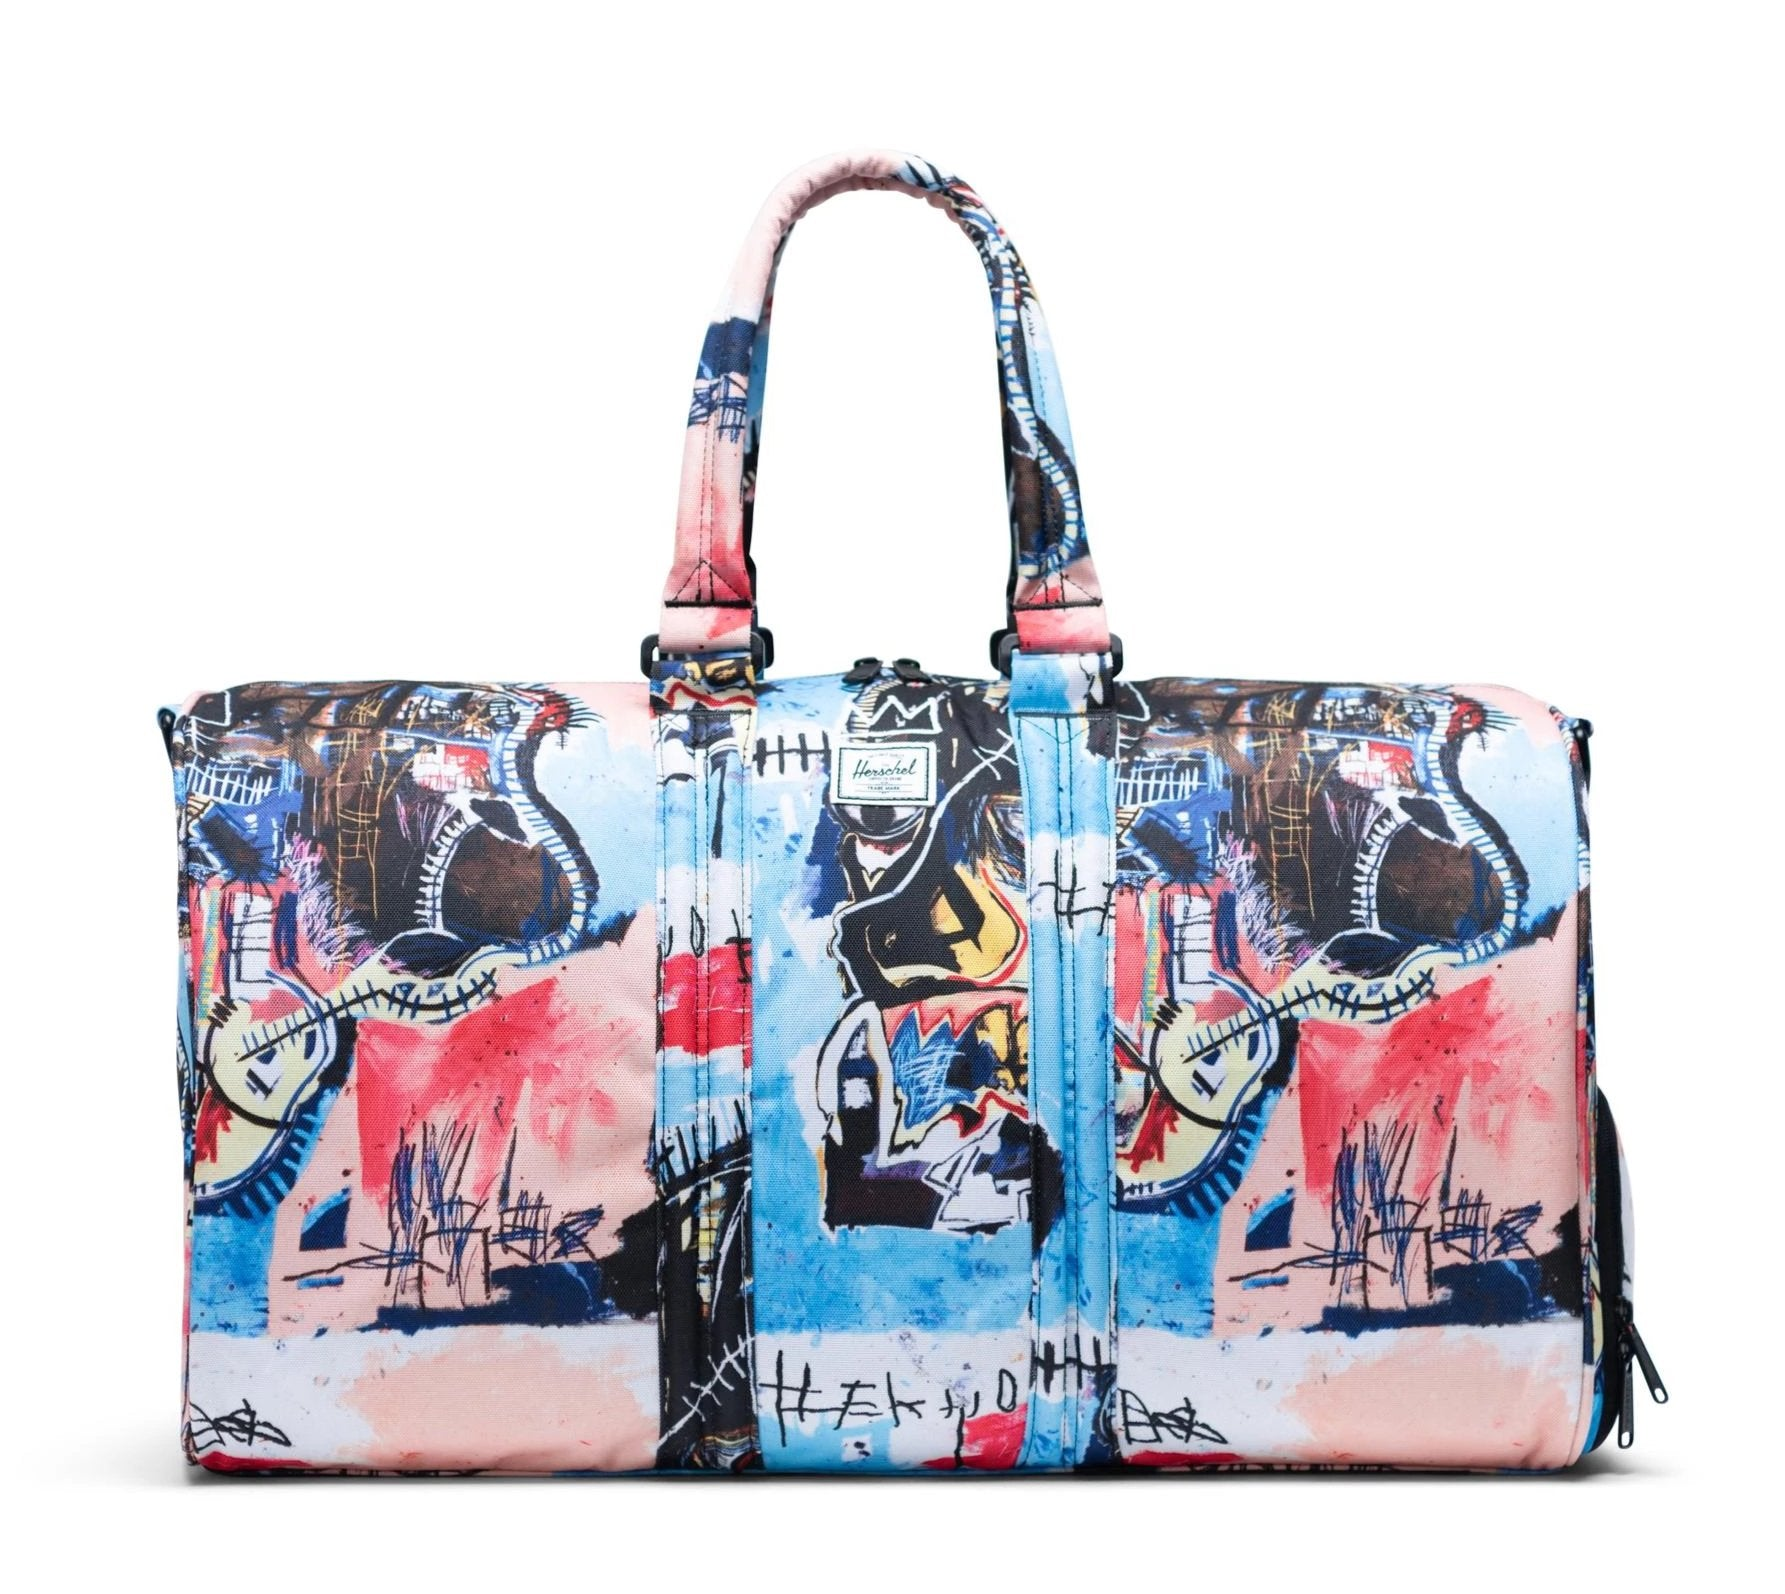 Herschel x Basquiat Novel Duffle - The Brant Foundation Shop